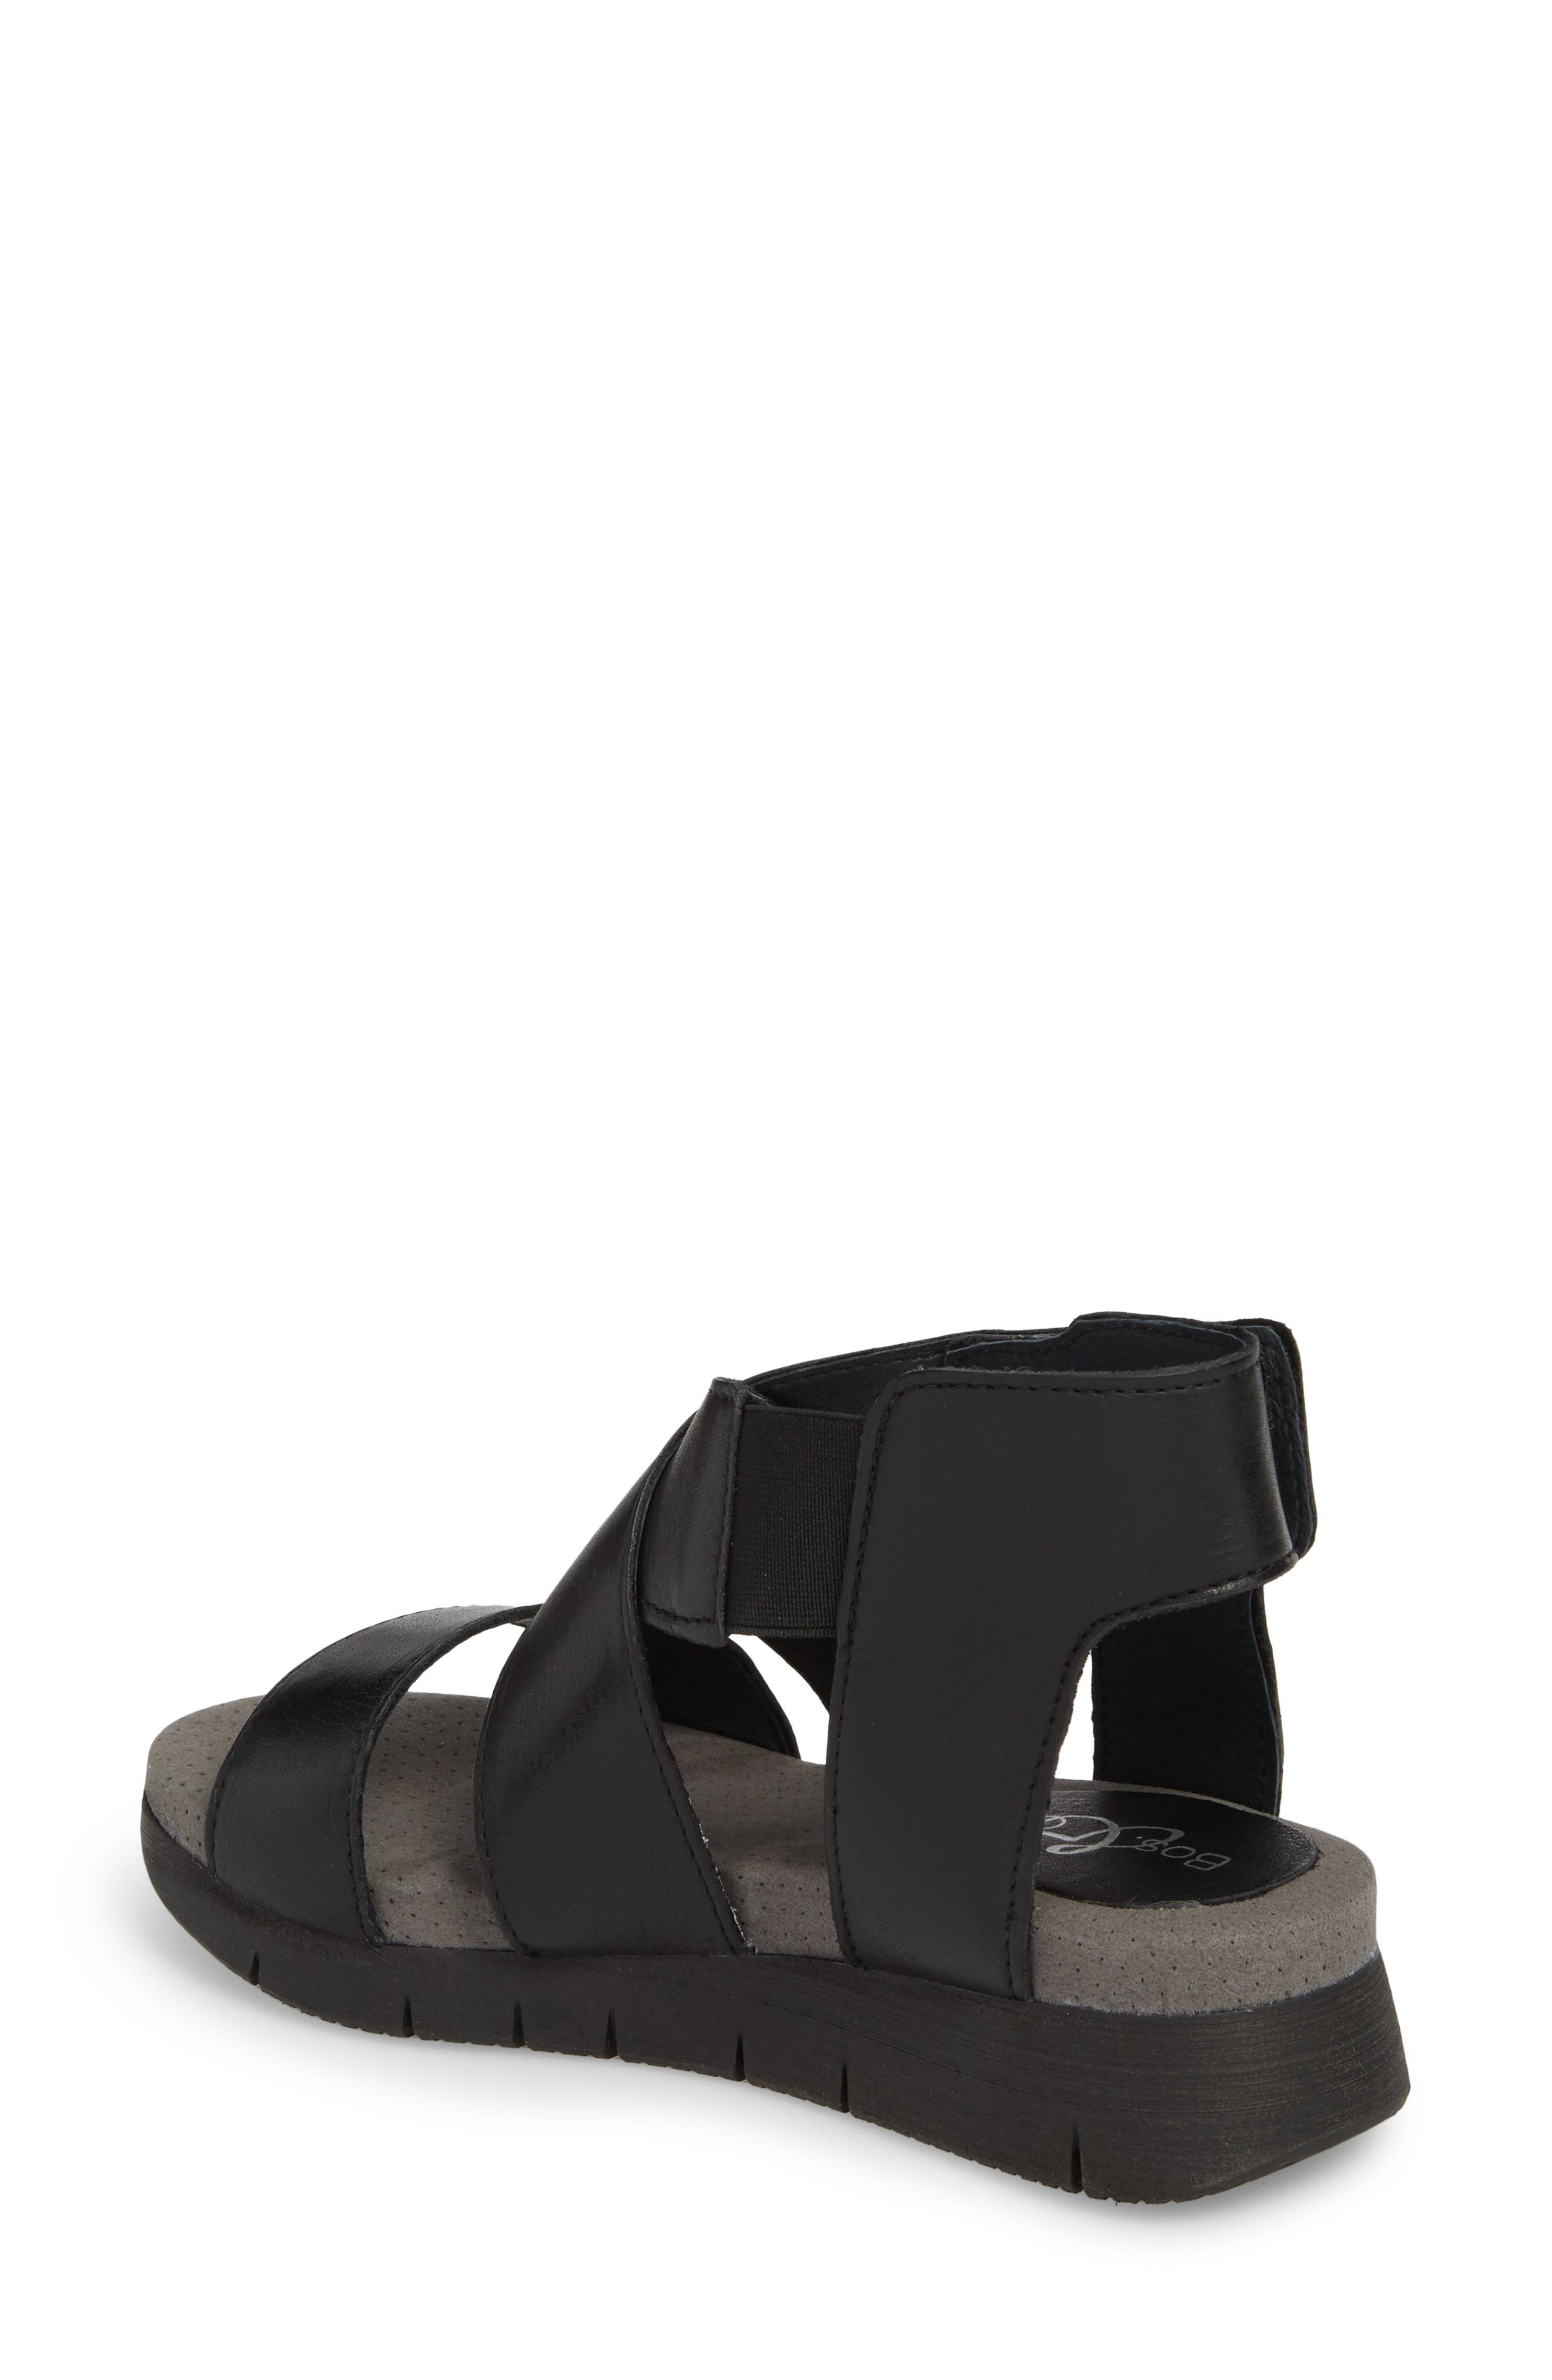 Piper Wedge Sandal,                             Alternate thumbnail 2, color,                             BLACK SAUVAGE LEATHER